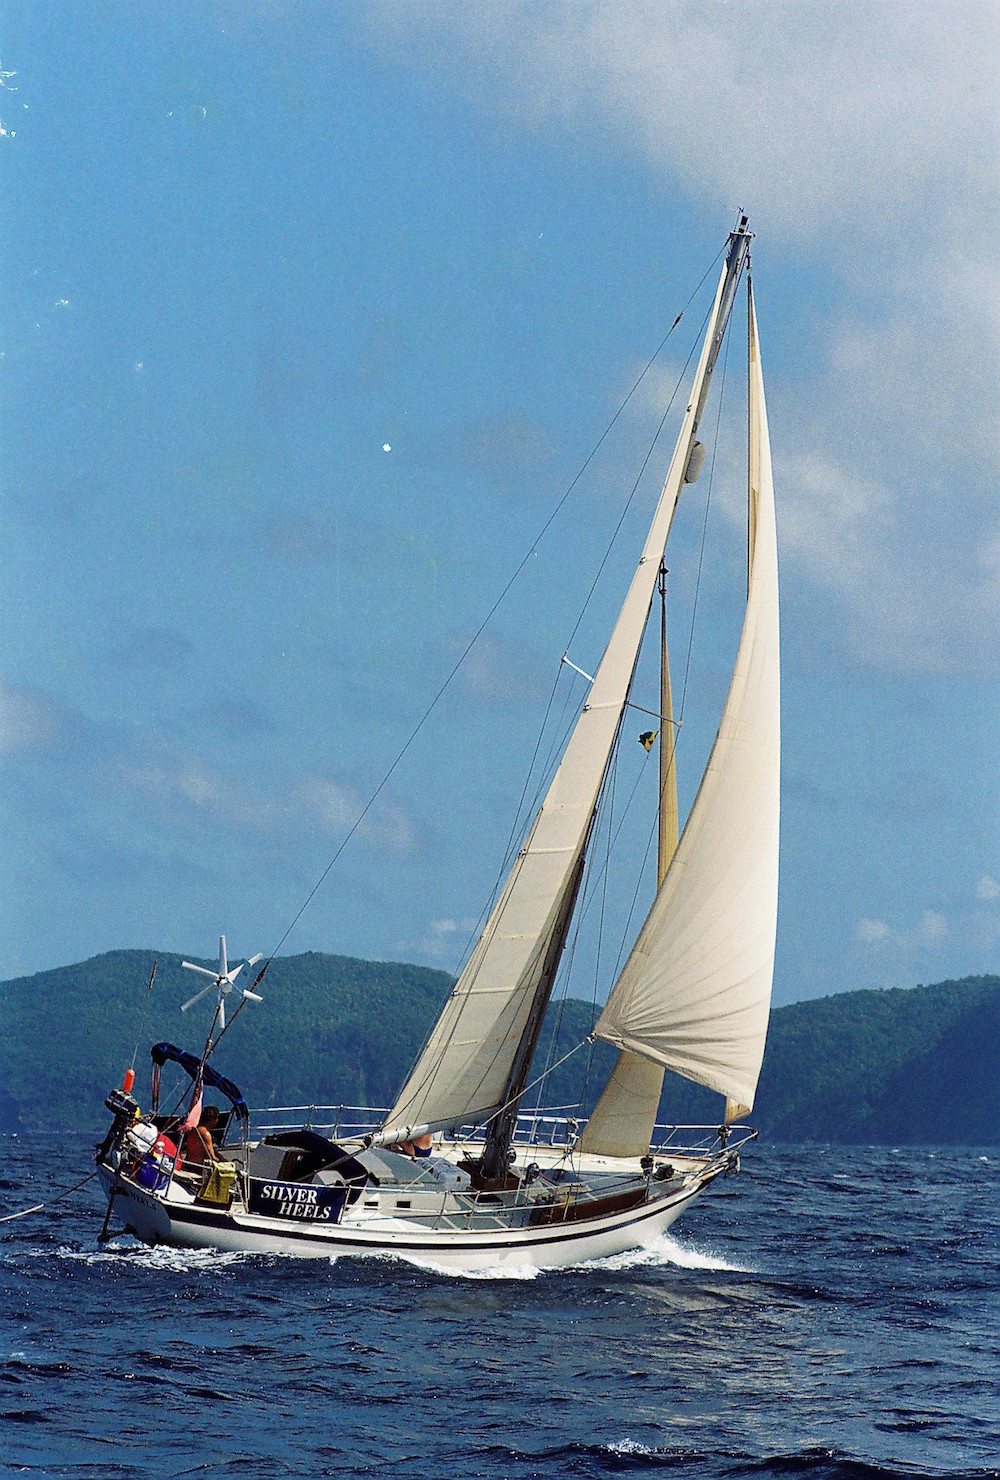 Tradewind 35 long-keeled production cruising yacht designed prior to 1988, and one of 13 type approved yachts available to enter the 2018 Golden Globe solo non-stop round the world race.